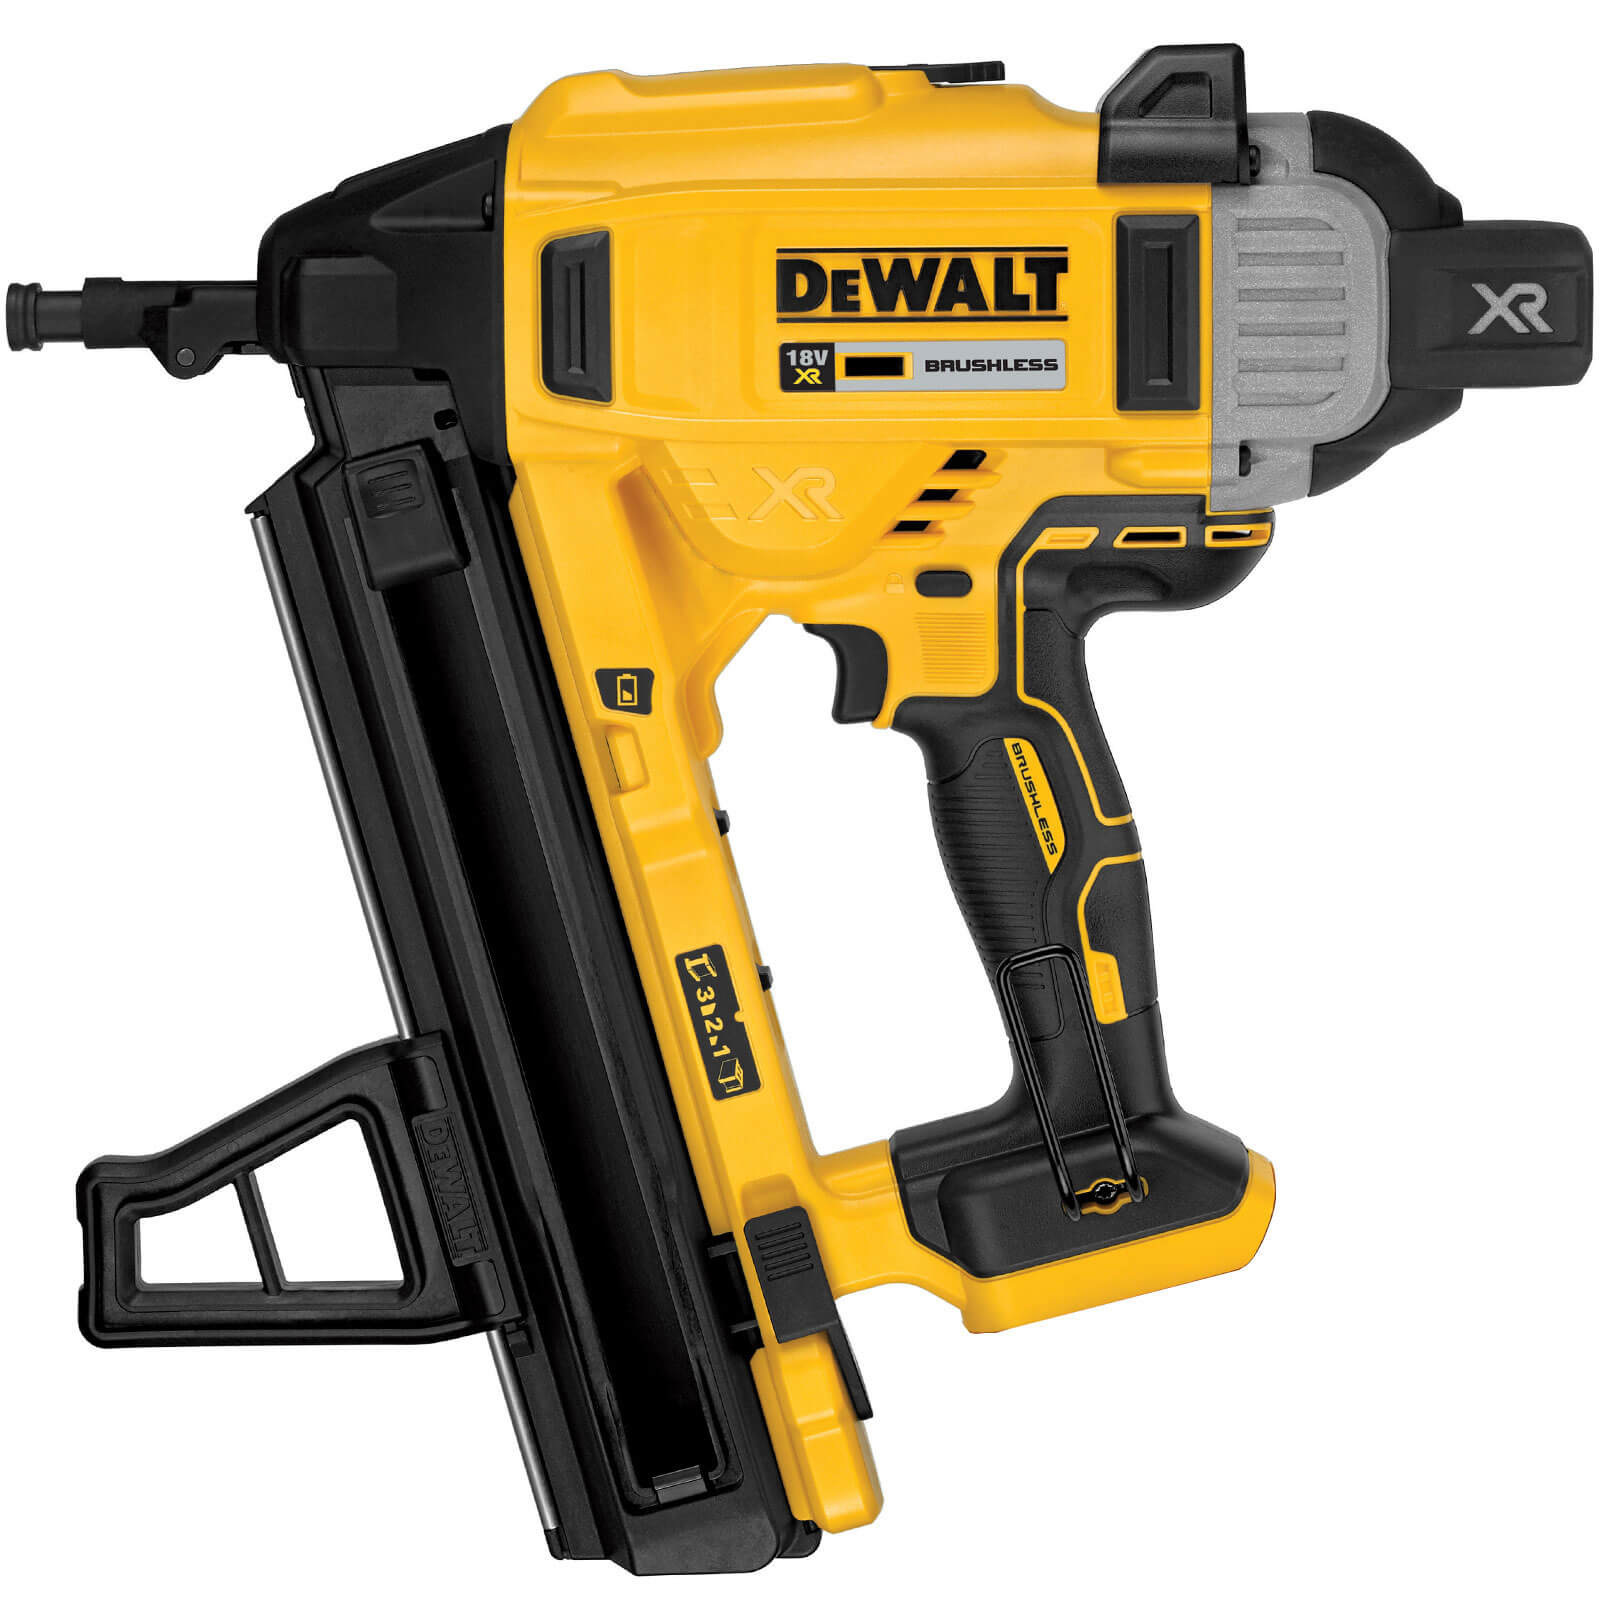 DeWalt DCN890N-XJ 18V XR Concrete Nailer Bare Unit